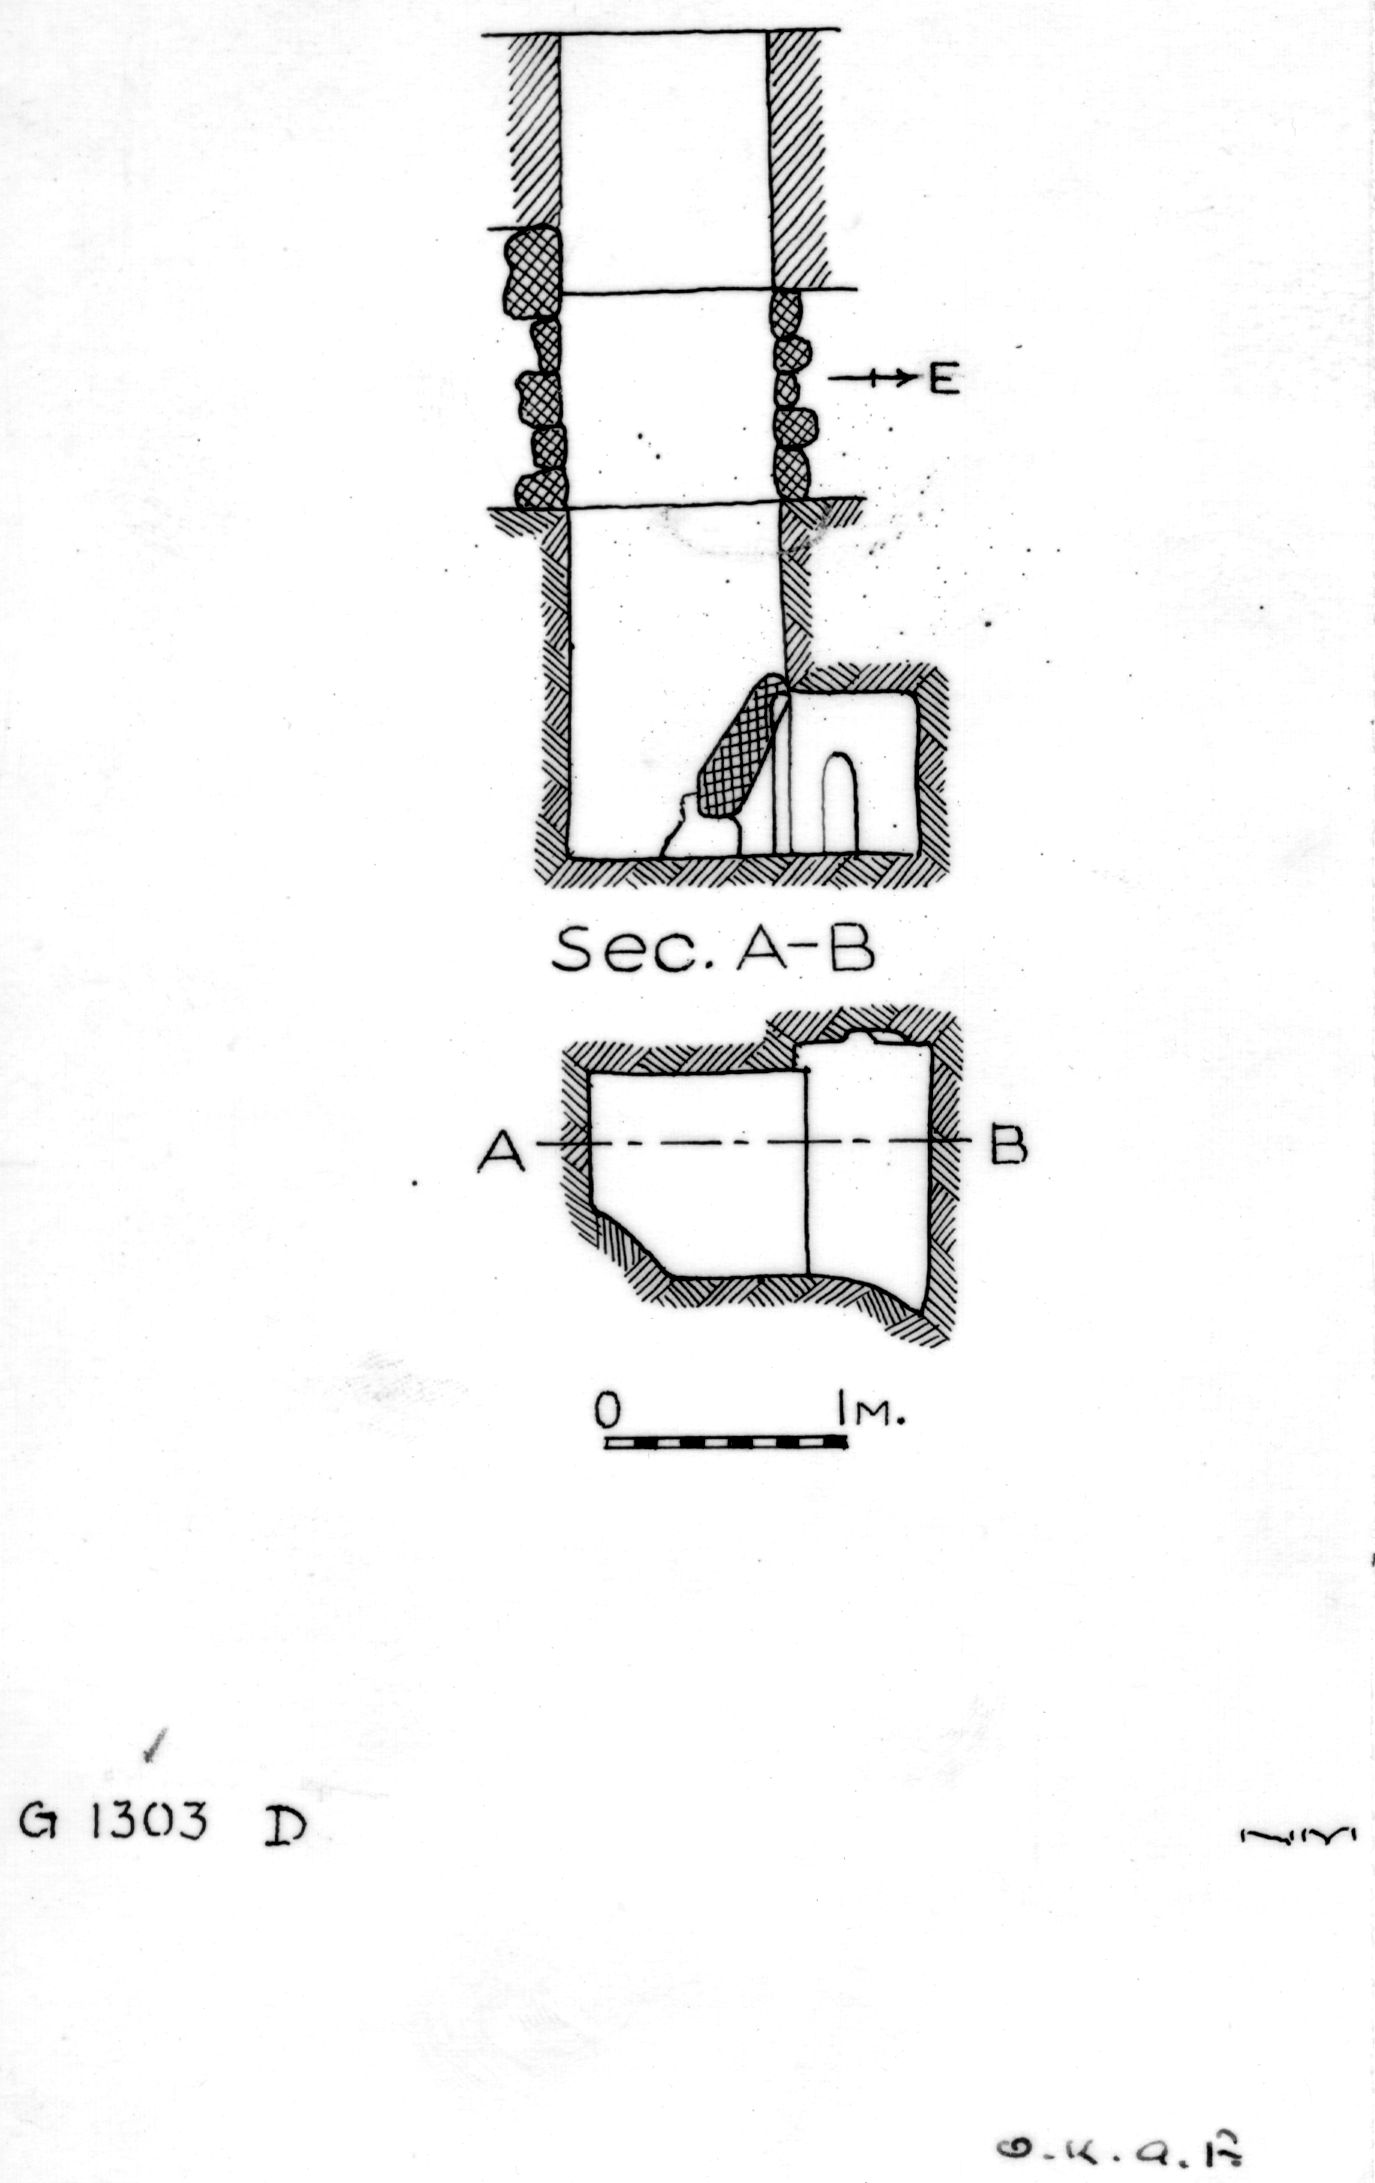 Maps and plans: G 1303, Shaft D